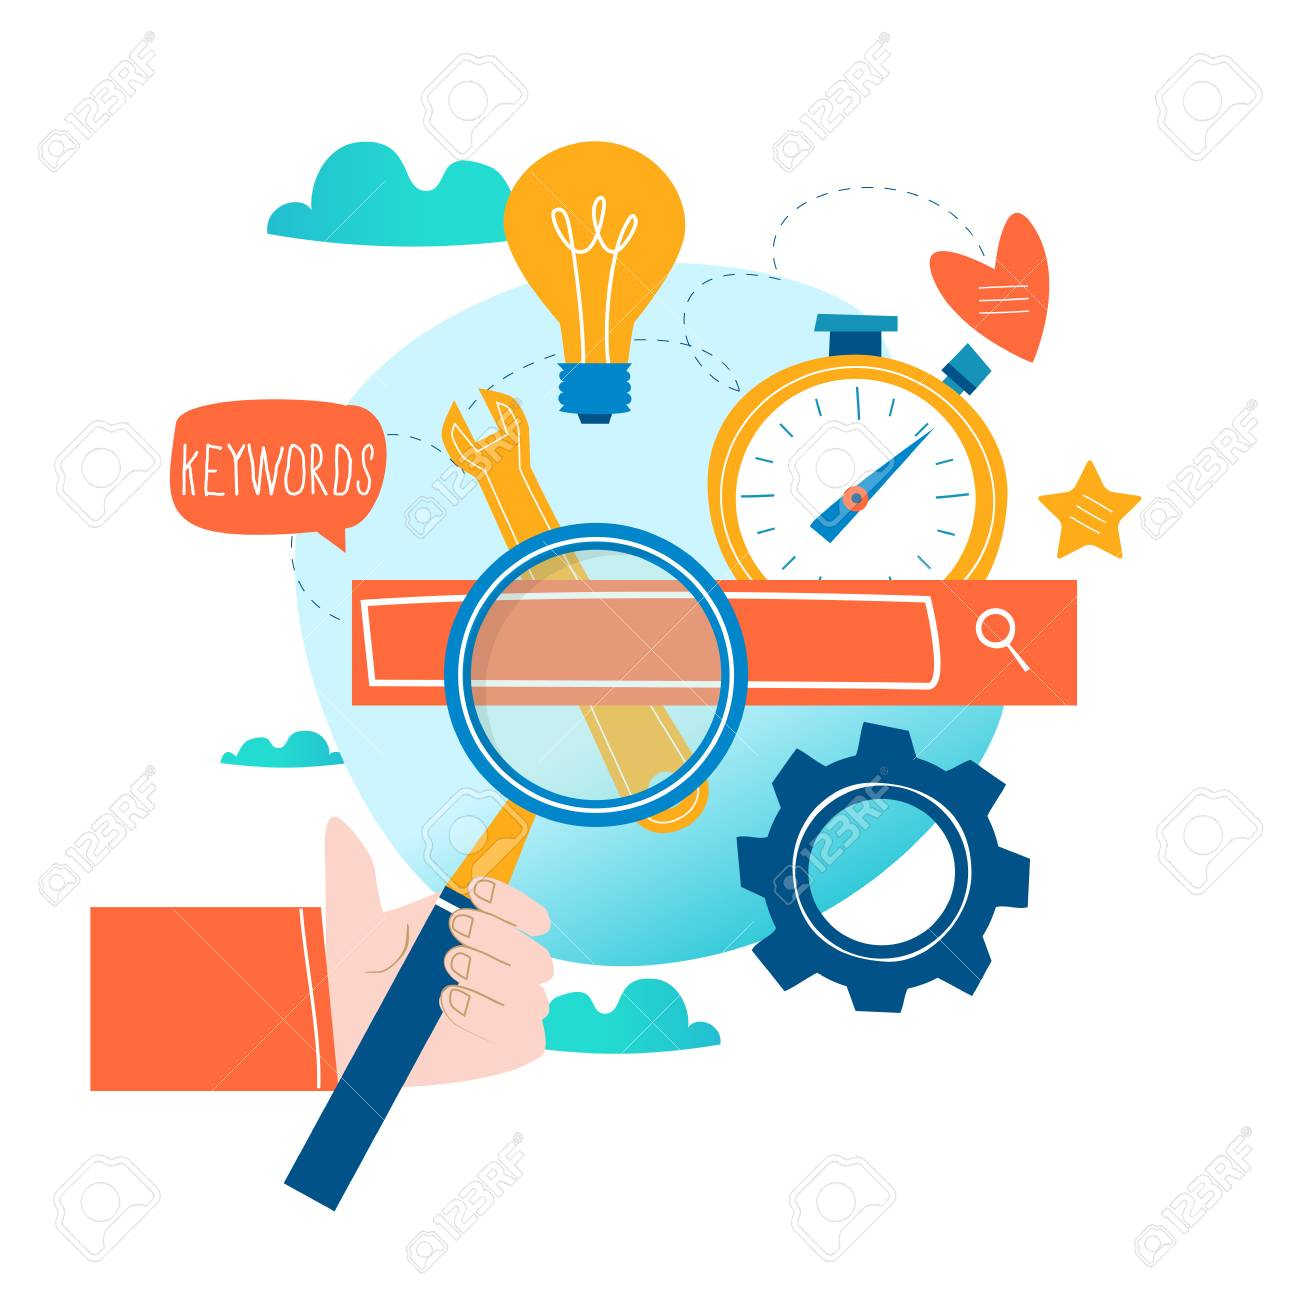 SEO, search engine optimization, keyword research, market research flat vector illustration. SEO concept. Web site coding, keywording, internet search optimization design for mobile and web graphics - 95982546